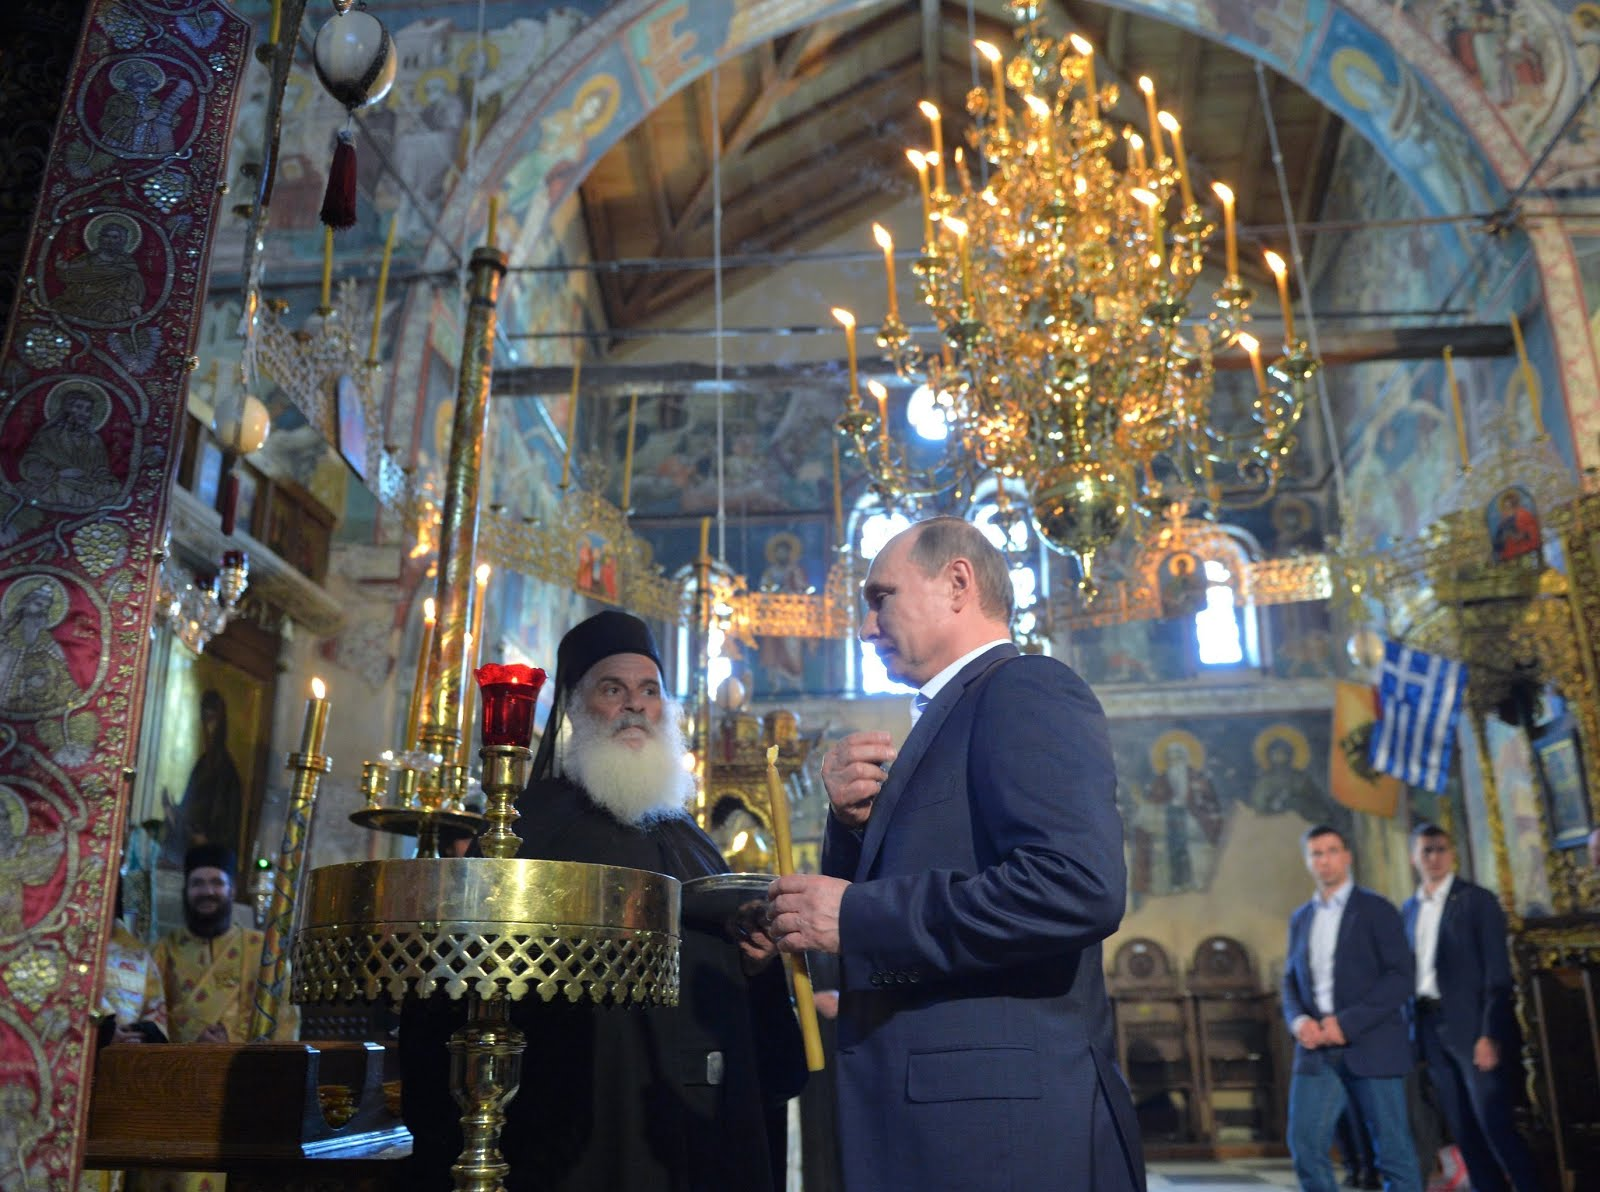 The Real Orthodox Political Leader